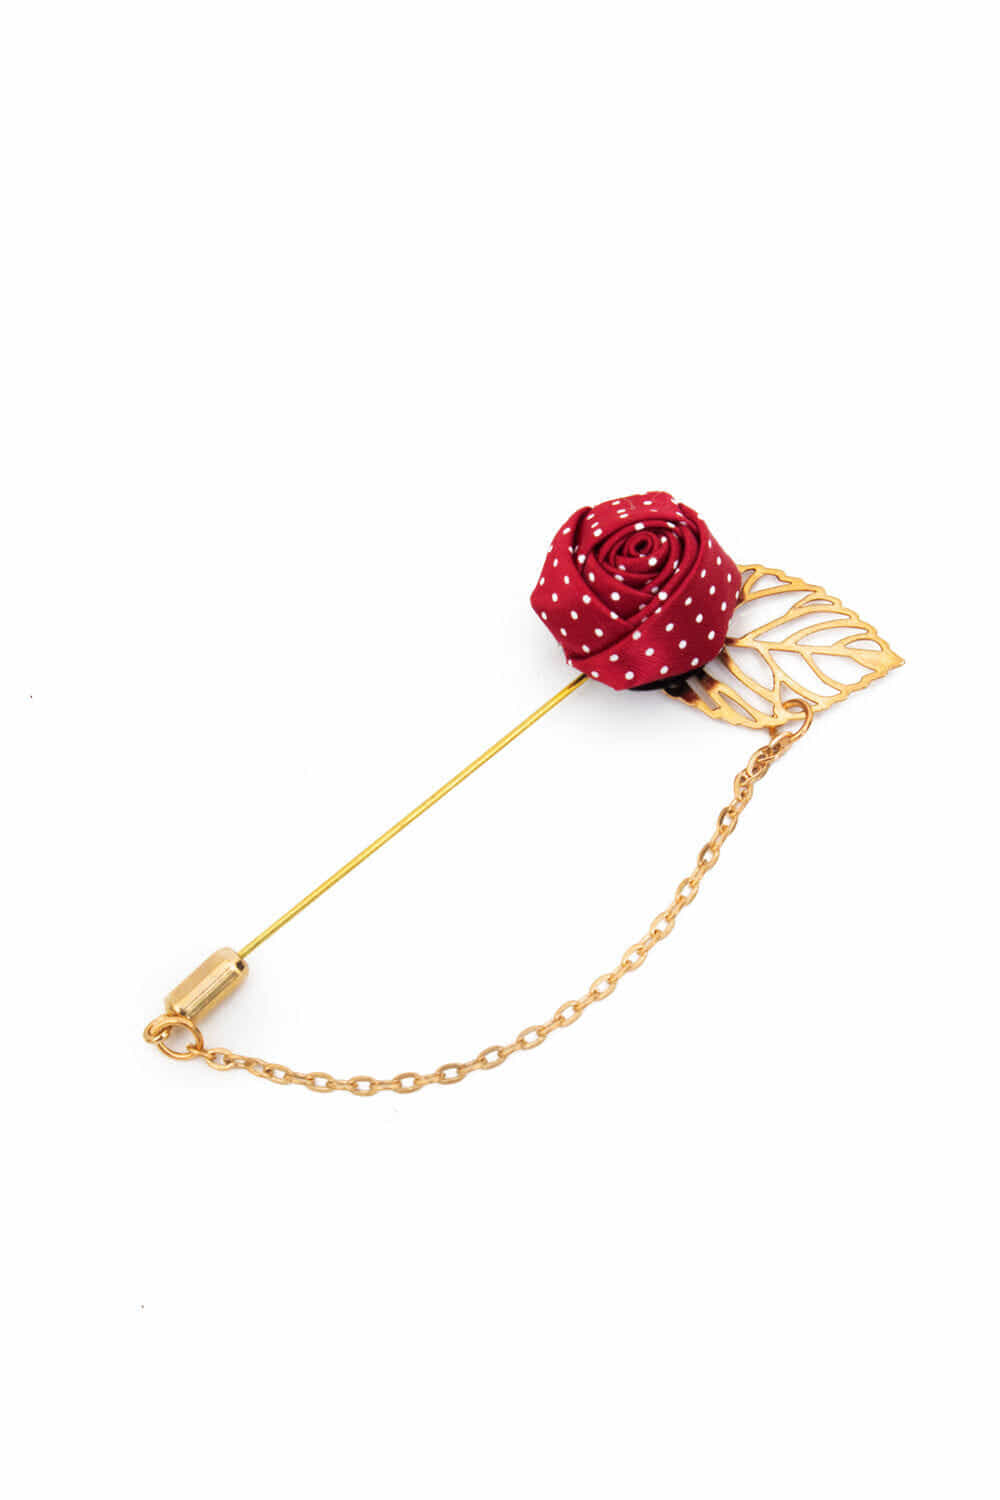 bow brooch n crystal pr light gucci jewelry view women en us for p jewellery watches fashion